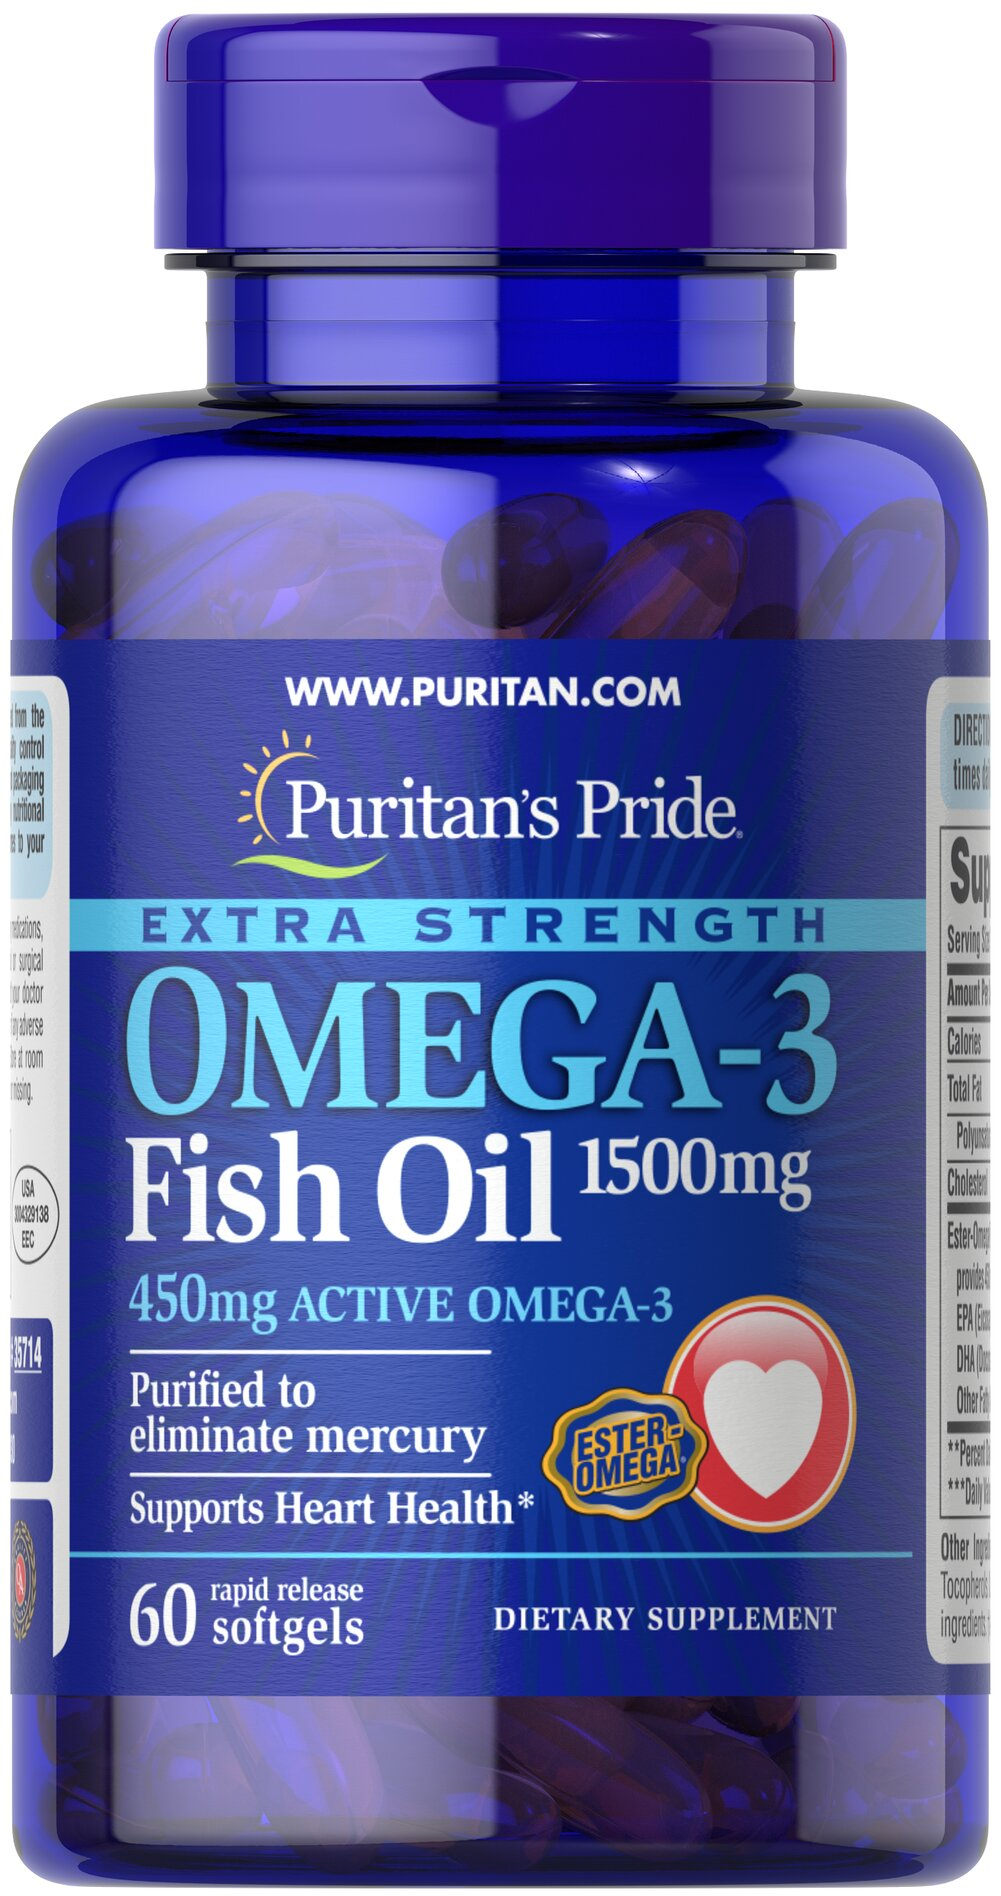 Extra Strength Omega-3 Fish Oil 1500 mg (450 mg Active Omega-3) <p><strong>Purified to Eliminate Mercury</strong></p><p>Super Potency 1500 mg  in one softgel!</p><p>Contains 450 mg of active Omega-3 per softgel.</p><p>Features fish oil in rapid-release softgels with enhanced potency and superior absorption.**</p> 60 Softgels 1500 mg $11.51